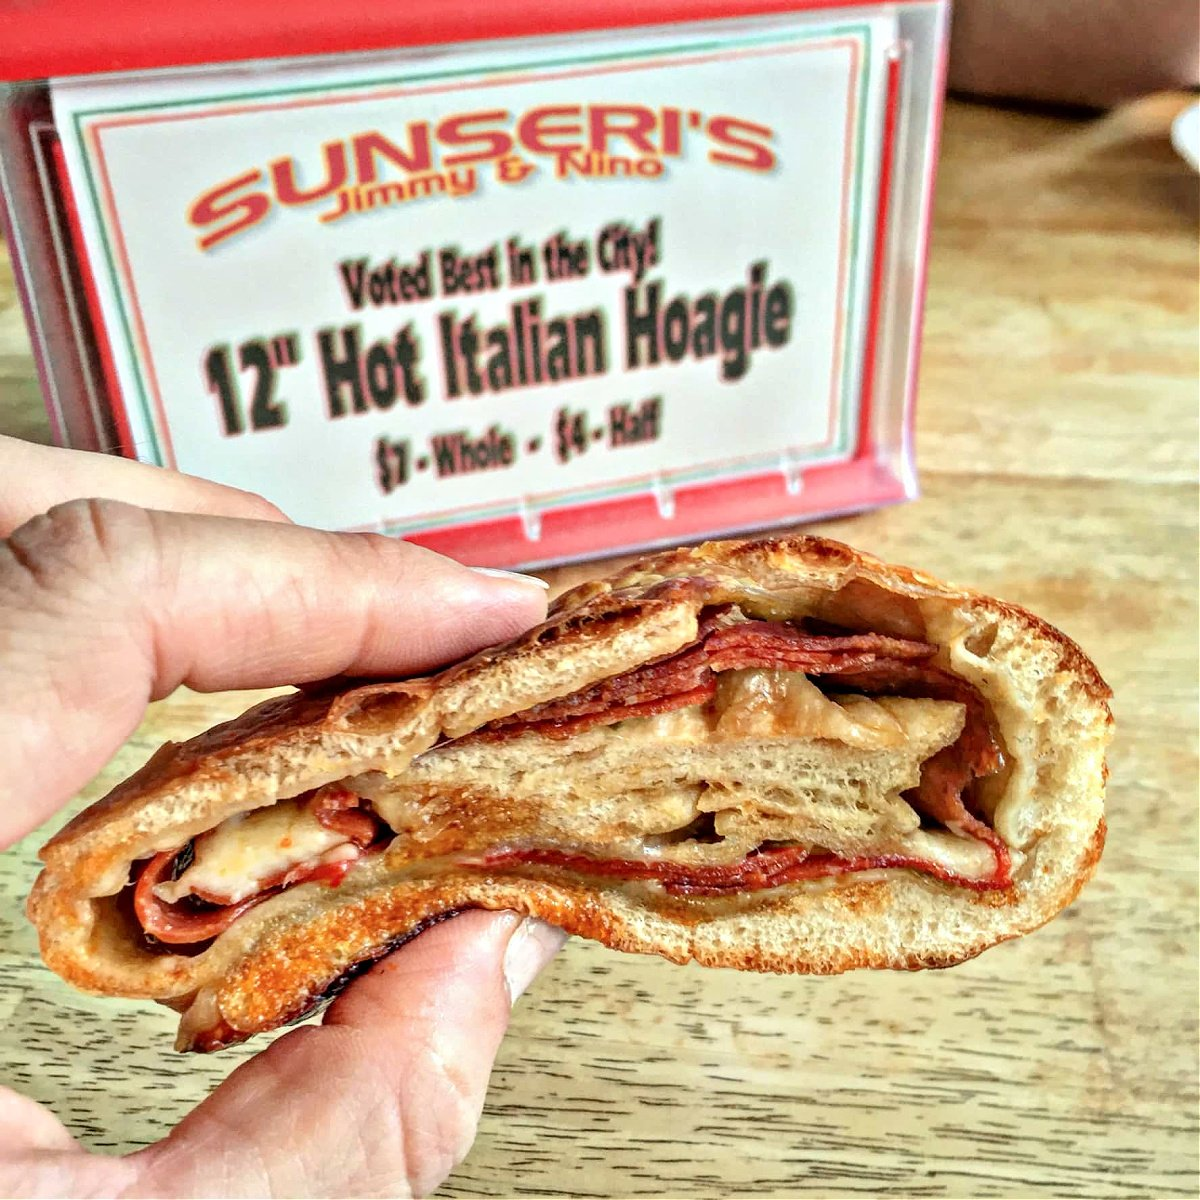 Woman's hand holding pepperoni Stromboli roll from Sunseri's.